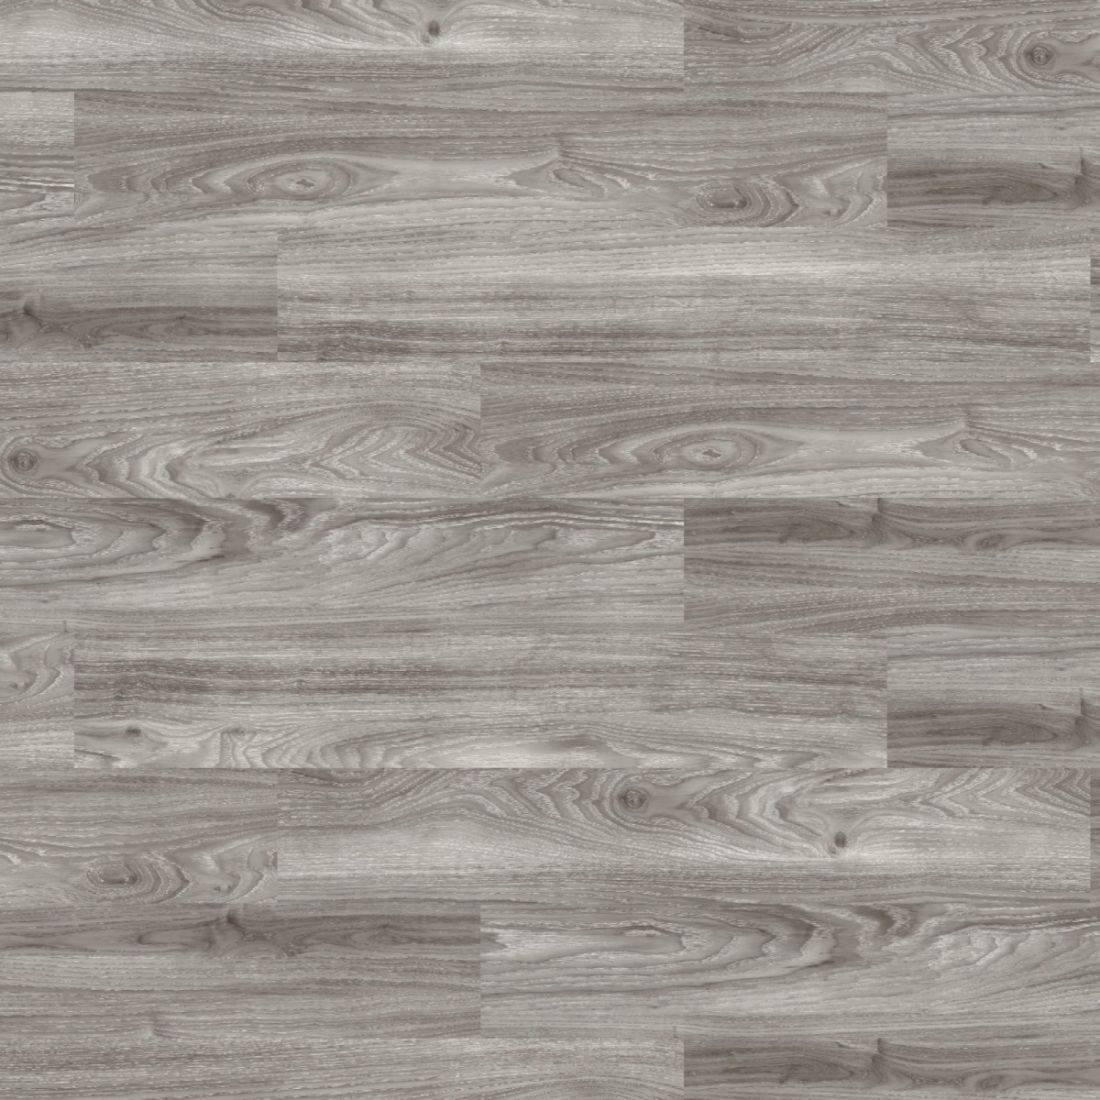 Light Gray Wood Flooring   Flooring. Light Gray Wood Flooring   Flooring   Endgame   Pinterest   Grey